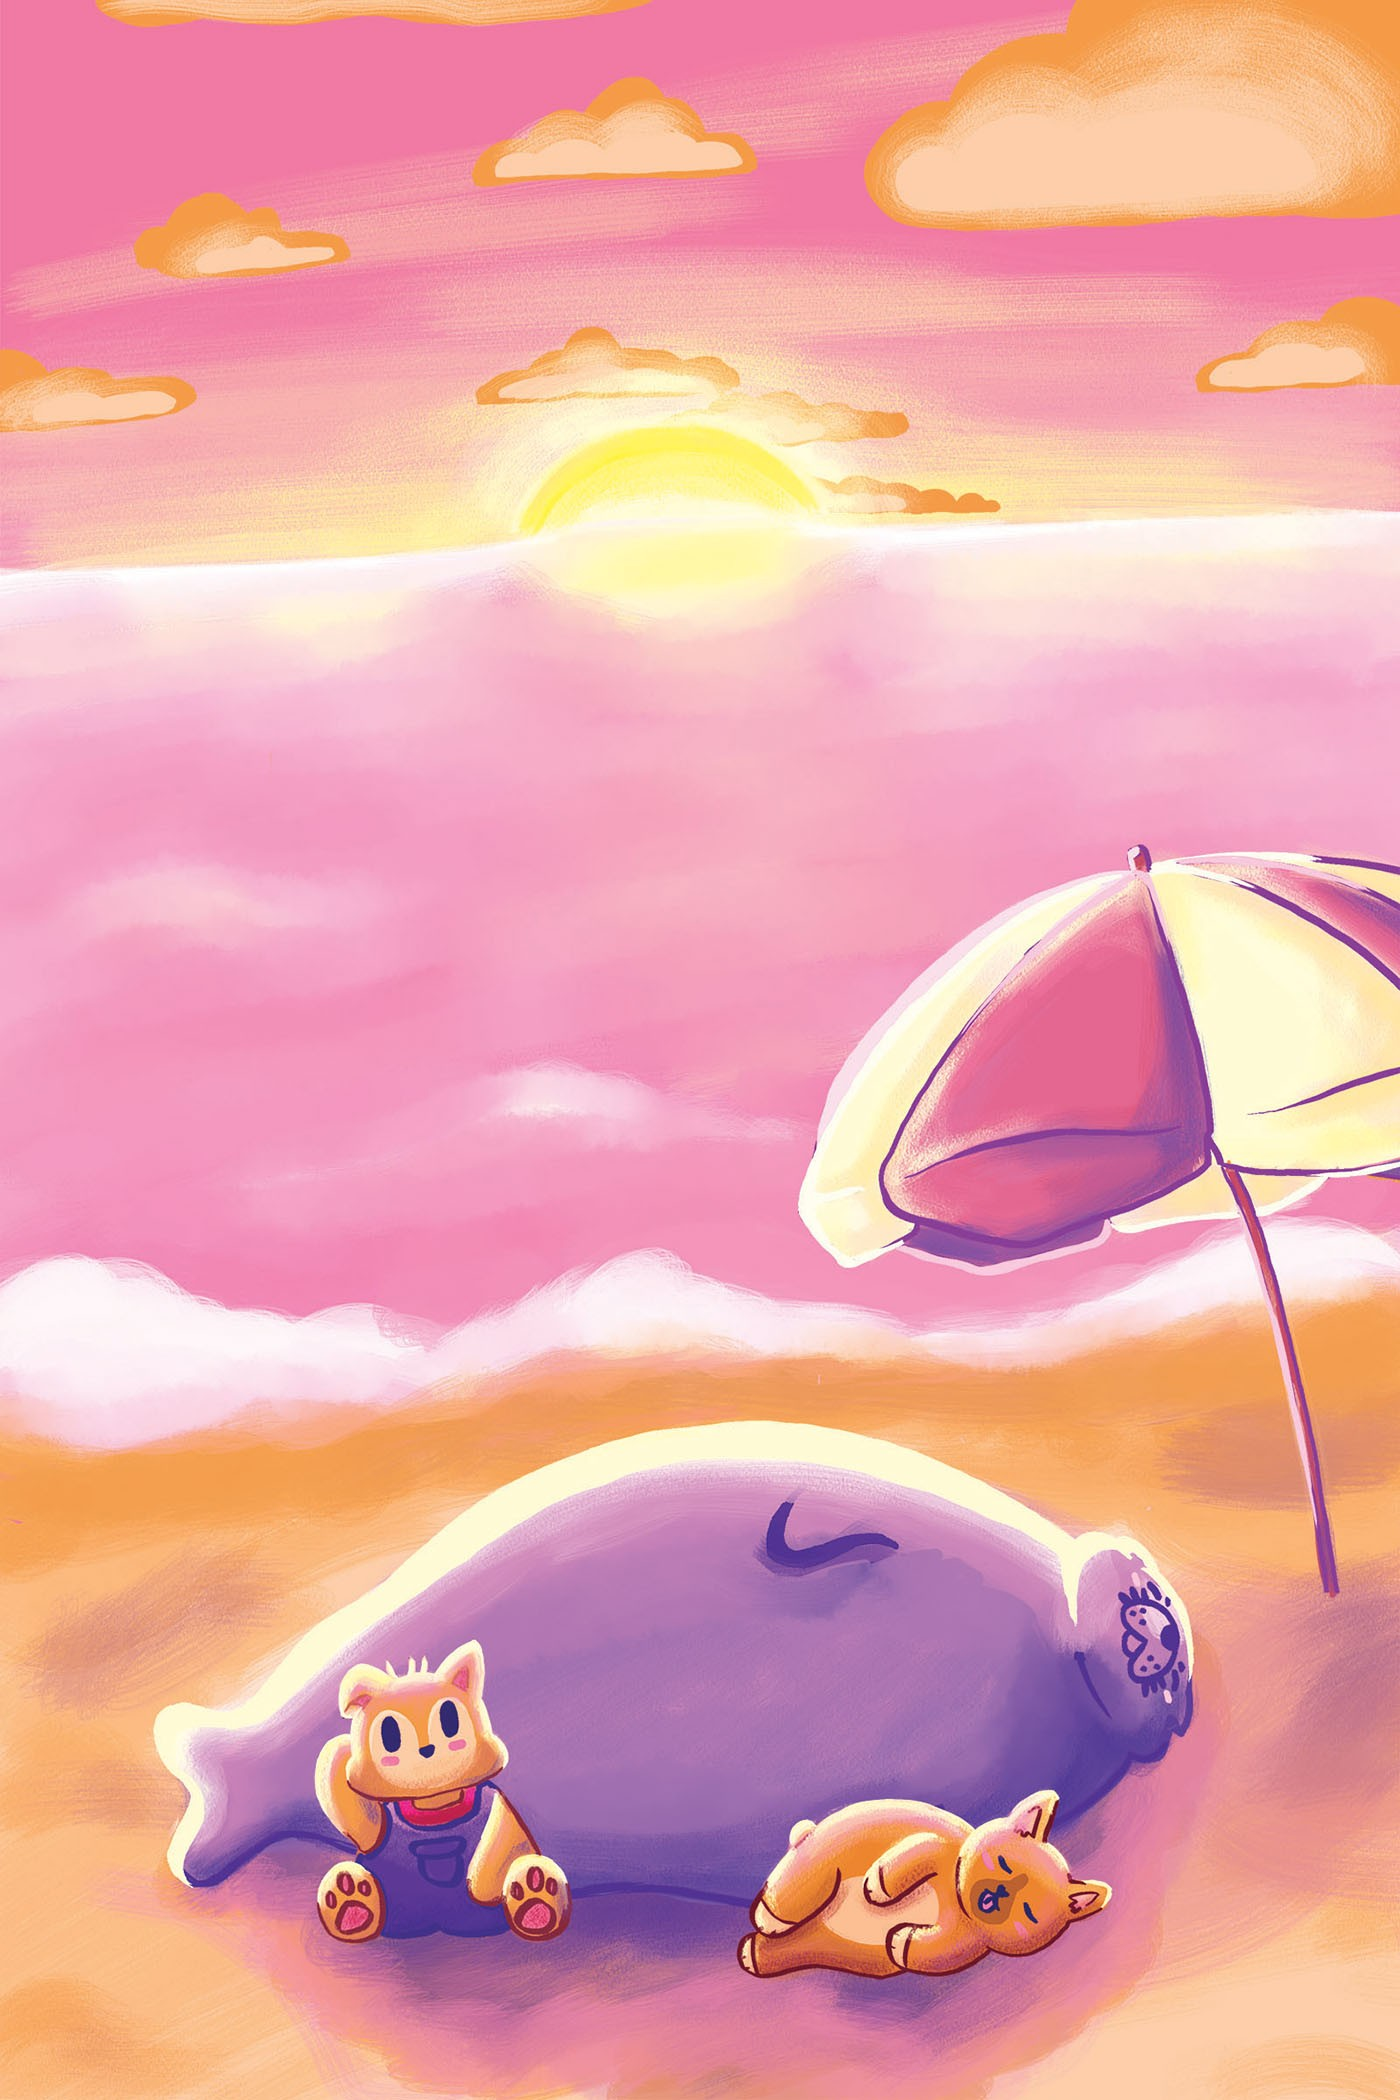 Three animals (a seal, a fox with overalls, and a corgi) are laying peacefully on the sand and napping with the sea/ocean behind them and a beach umbrella stuck in the sand. The sun is setting and creating rippling reflections of light in the water.